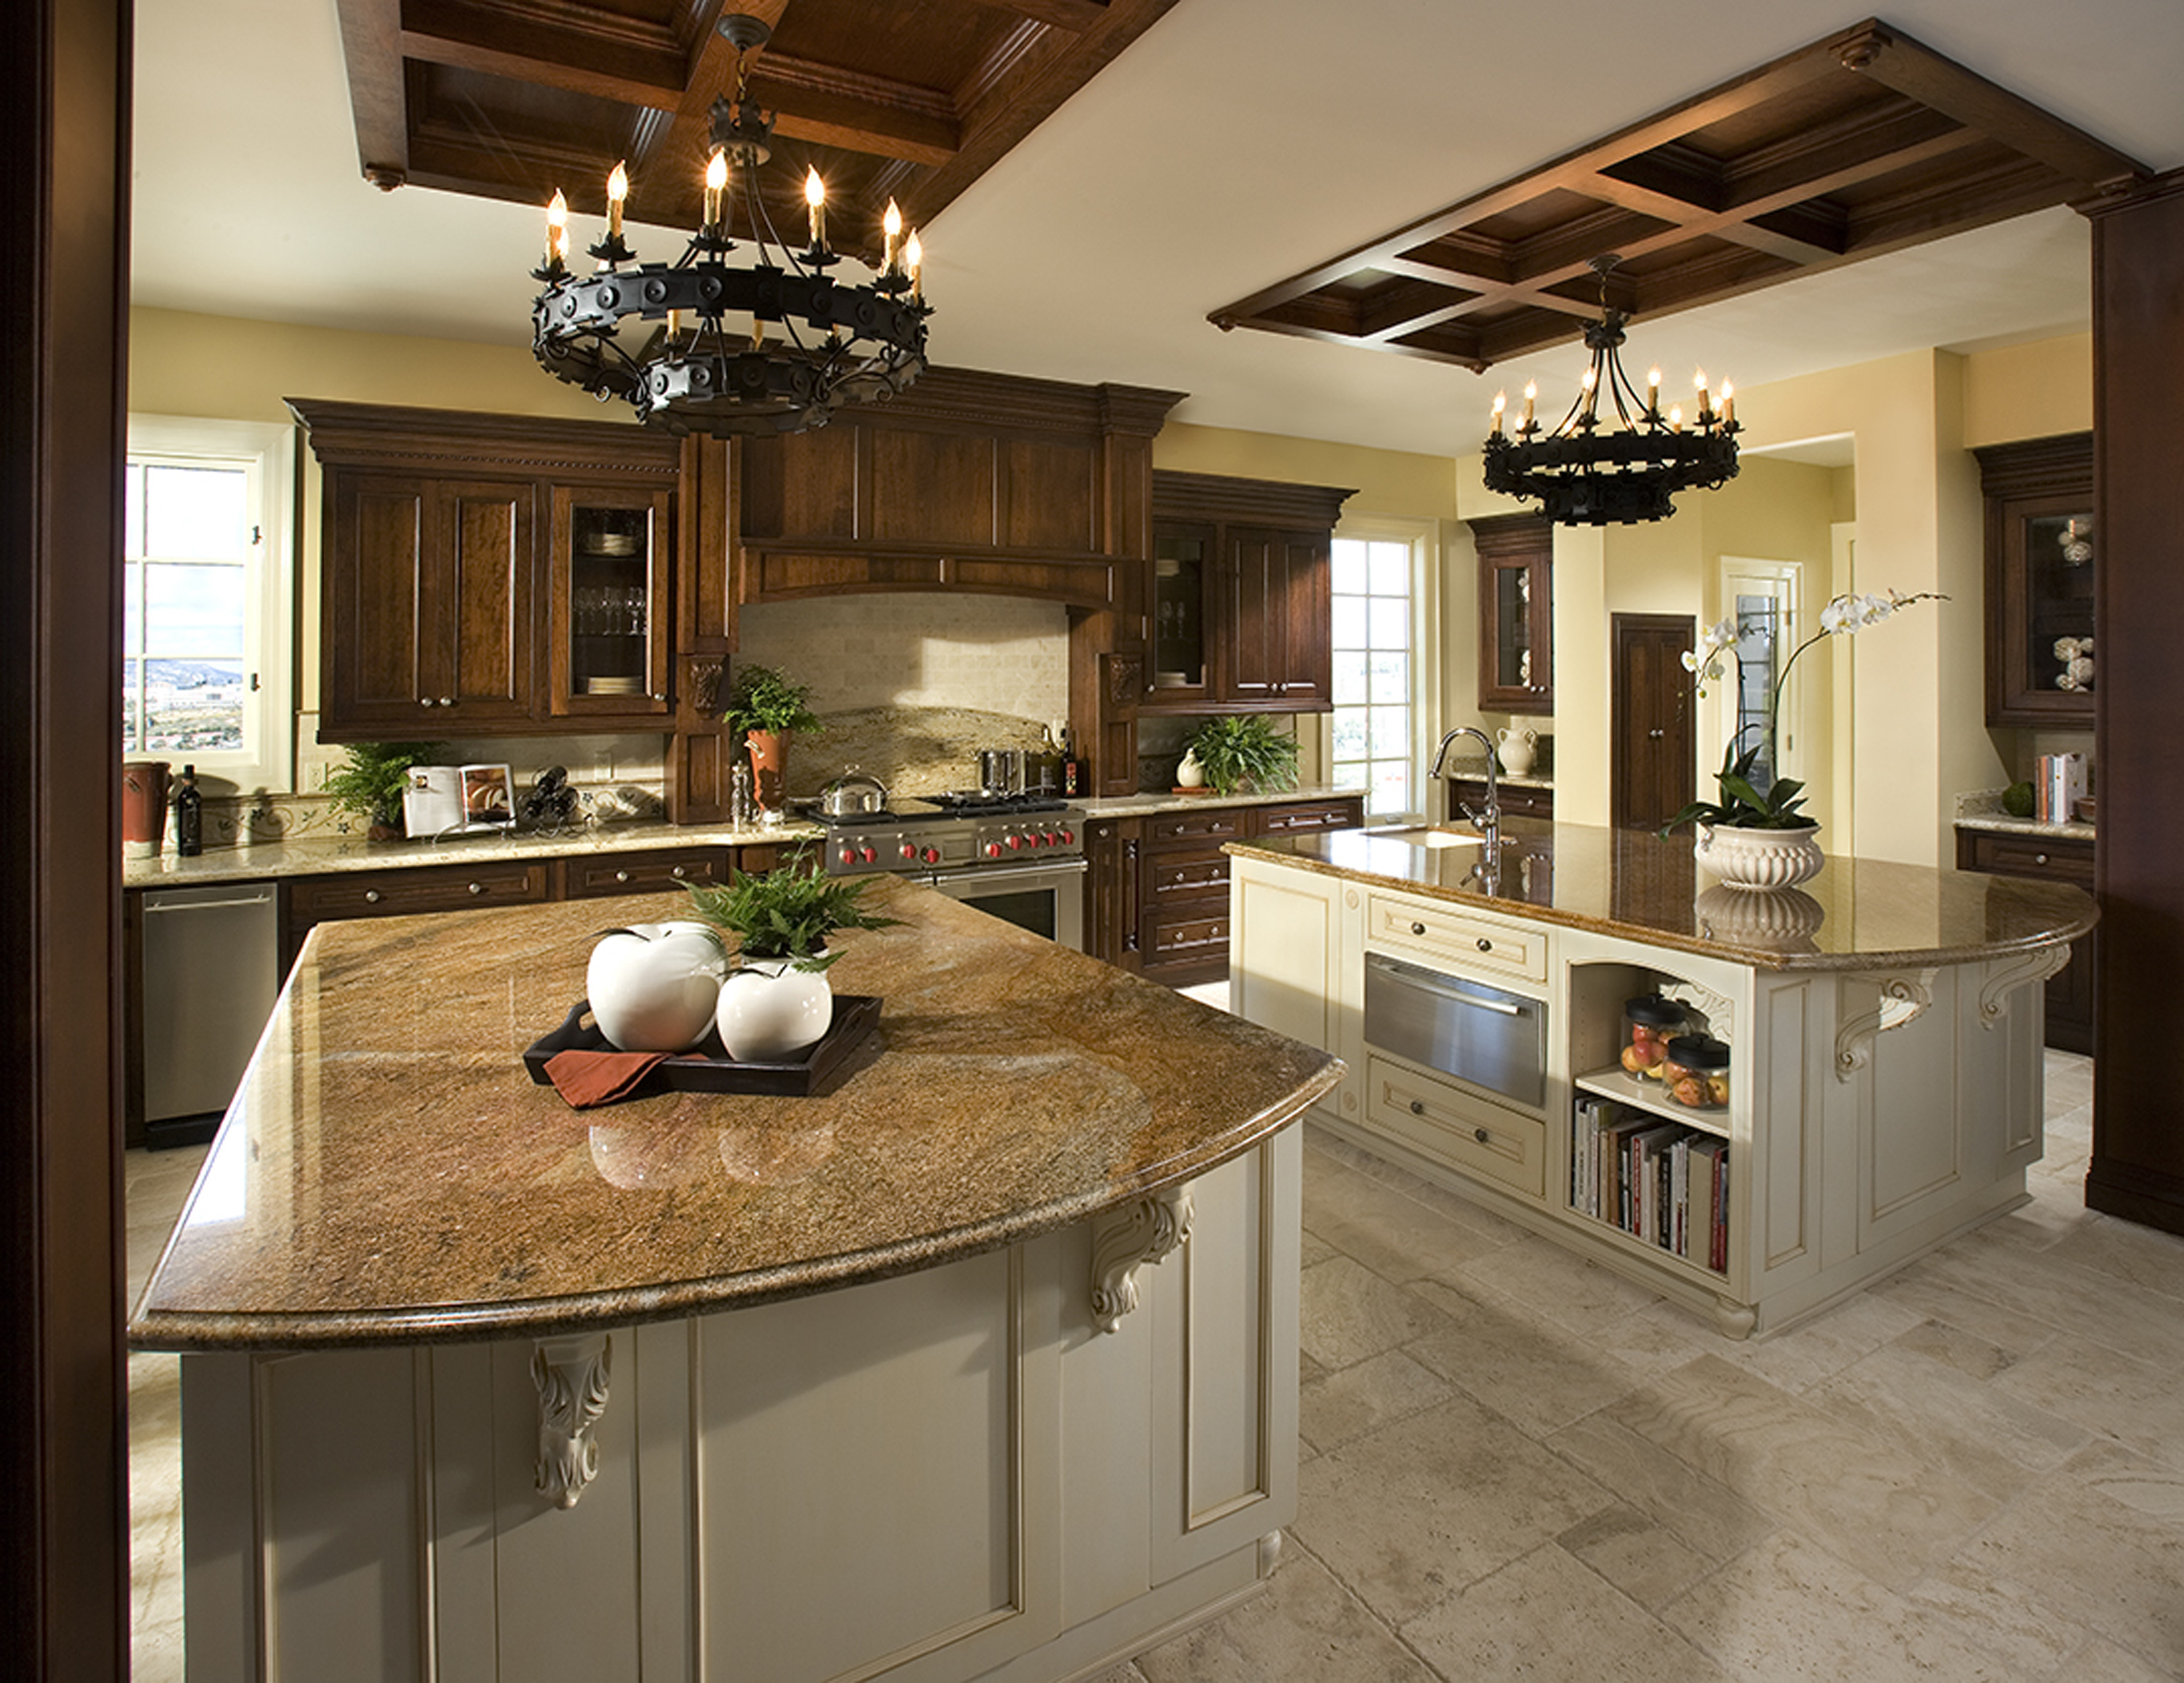 Historical kitchen remodel